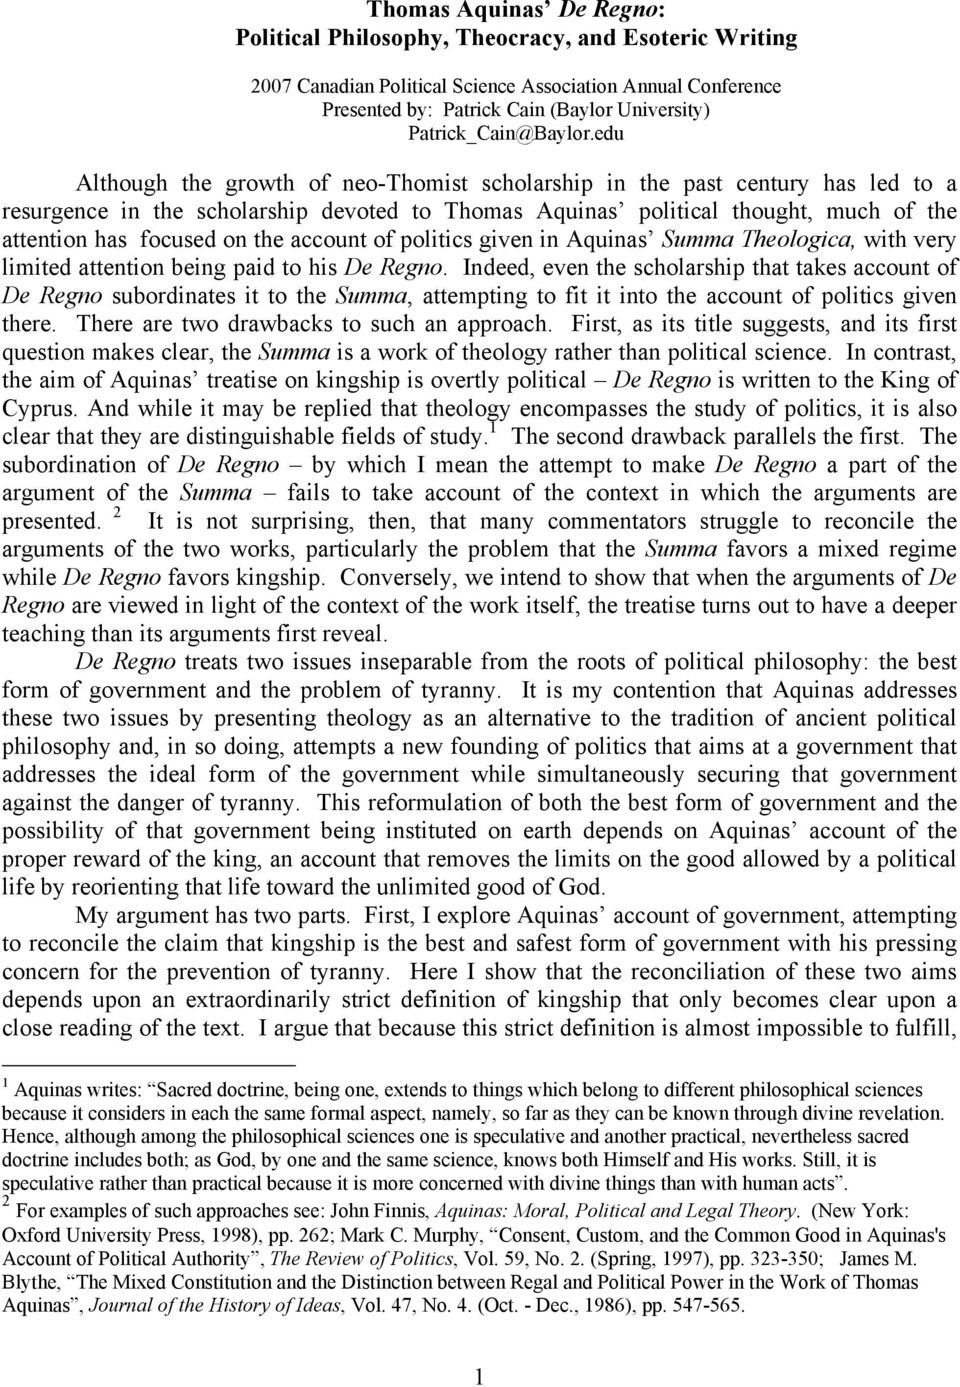 ancient political philosophy essay A divide between ancient and modern philosophy of the political community is modern and ancient theorists as well this essay has tried.